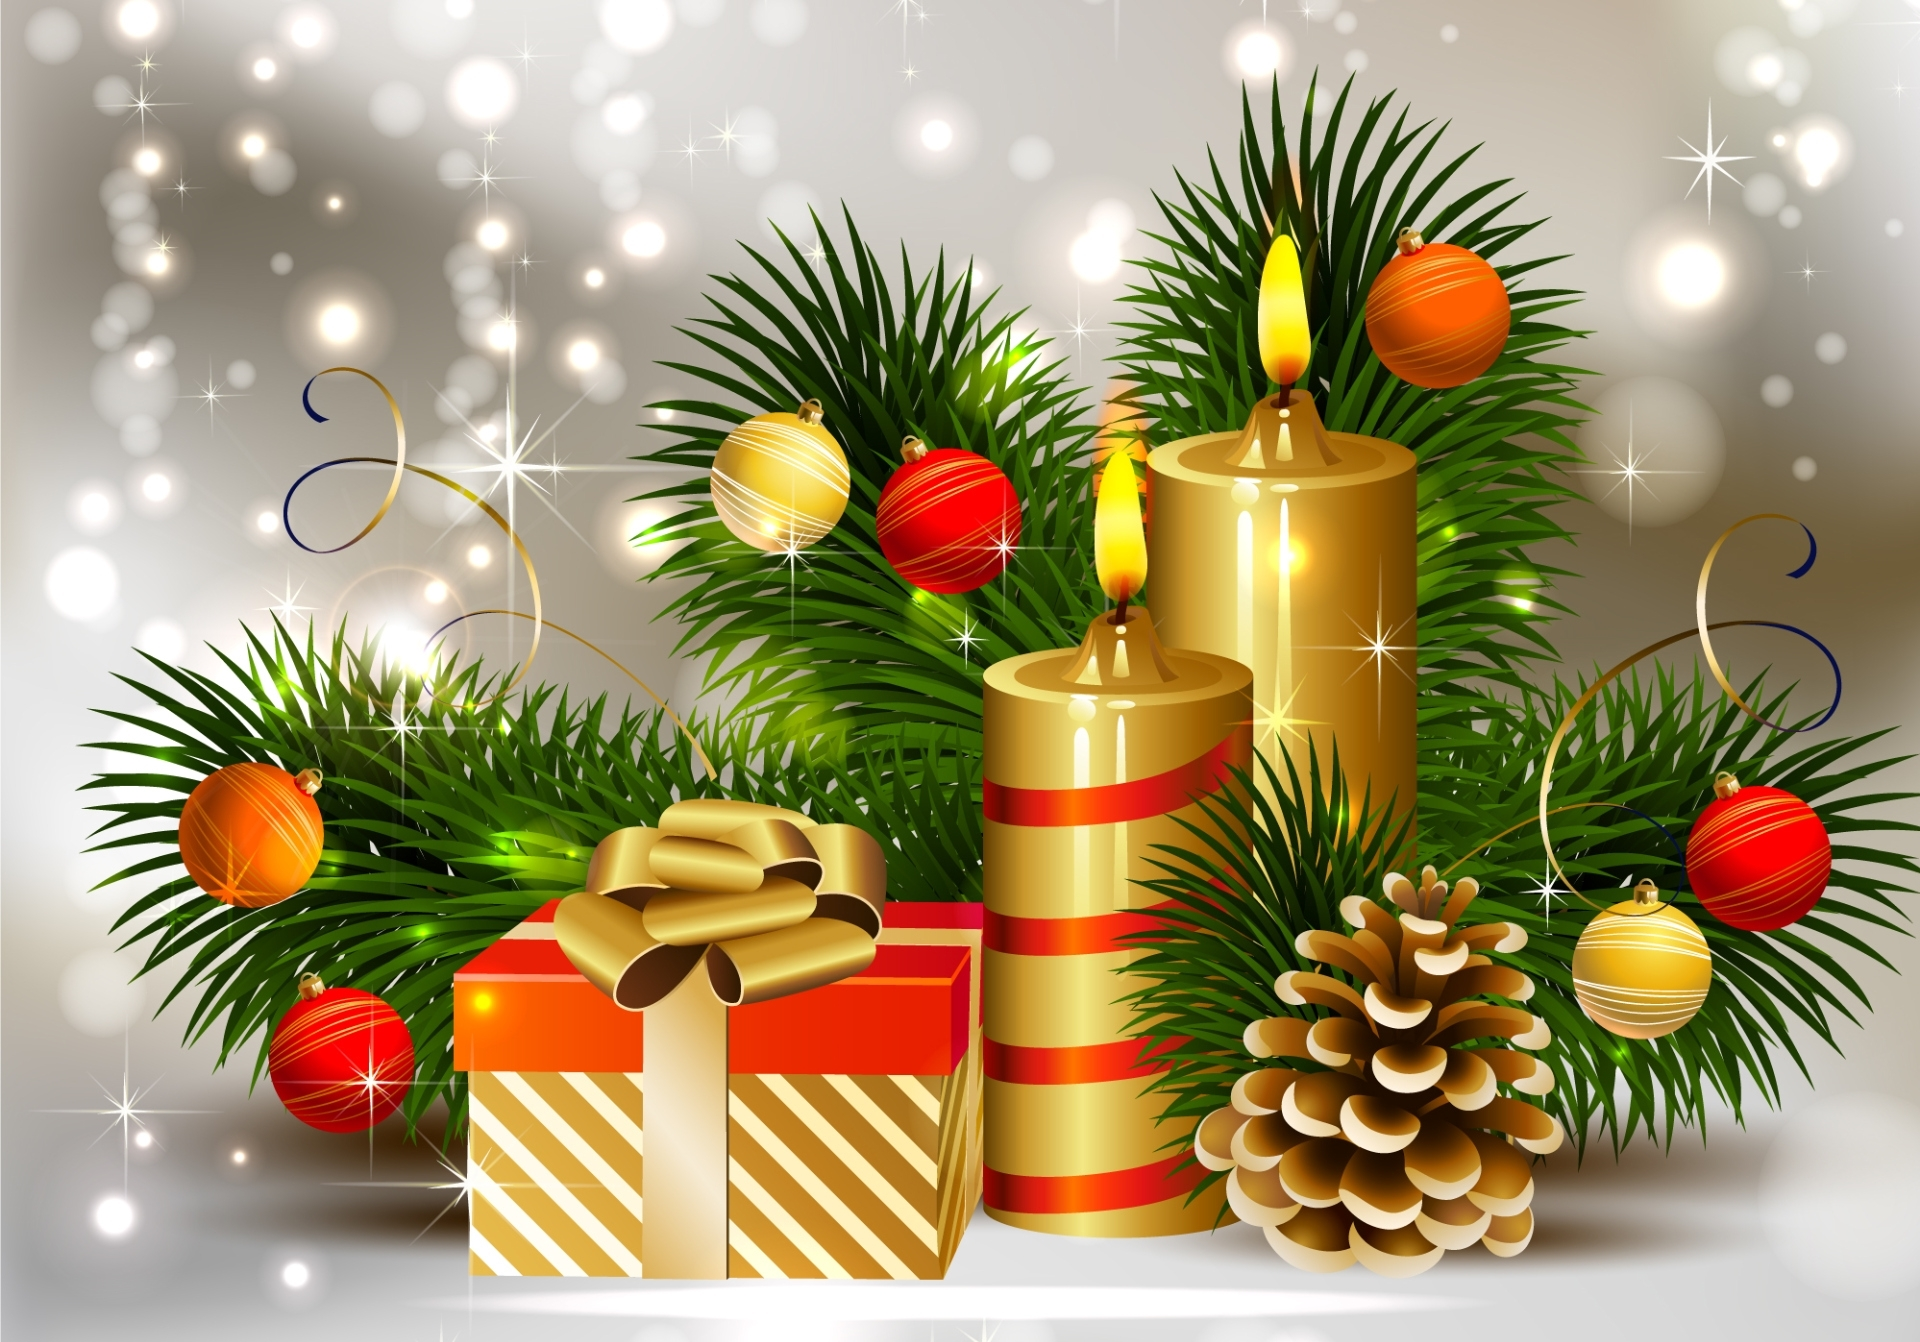 13781 download wallpaper Holidays, New Year, Christmas, Xmas, Candles screensavers and pictures for free